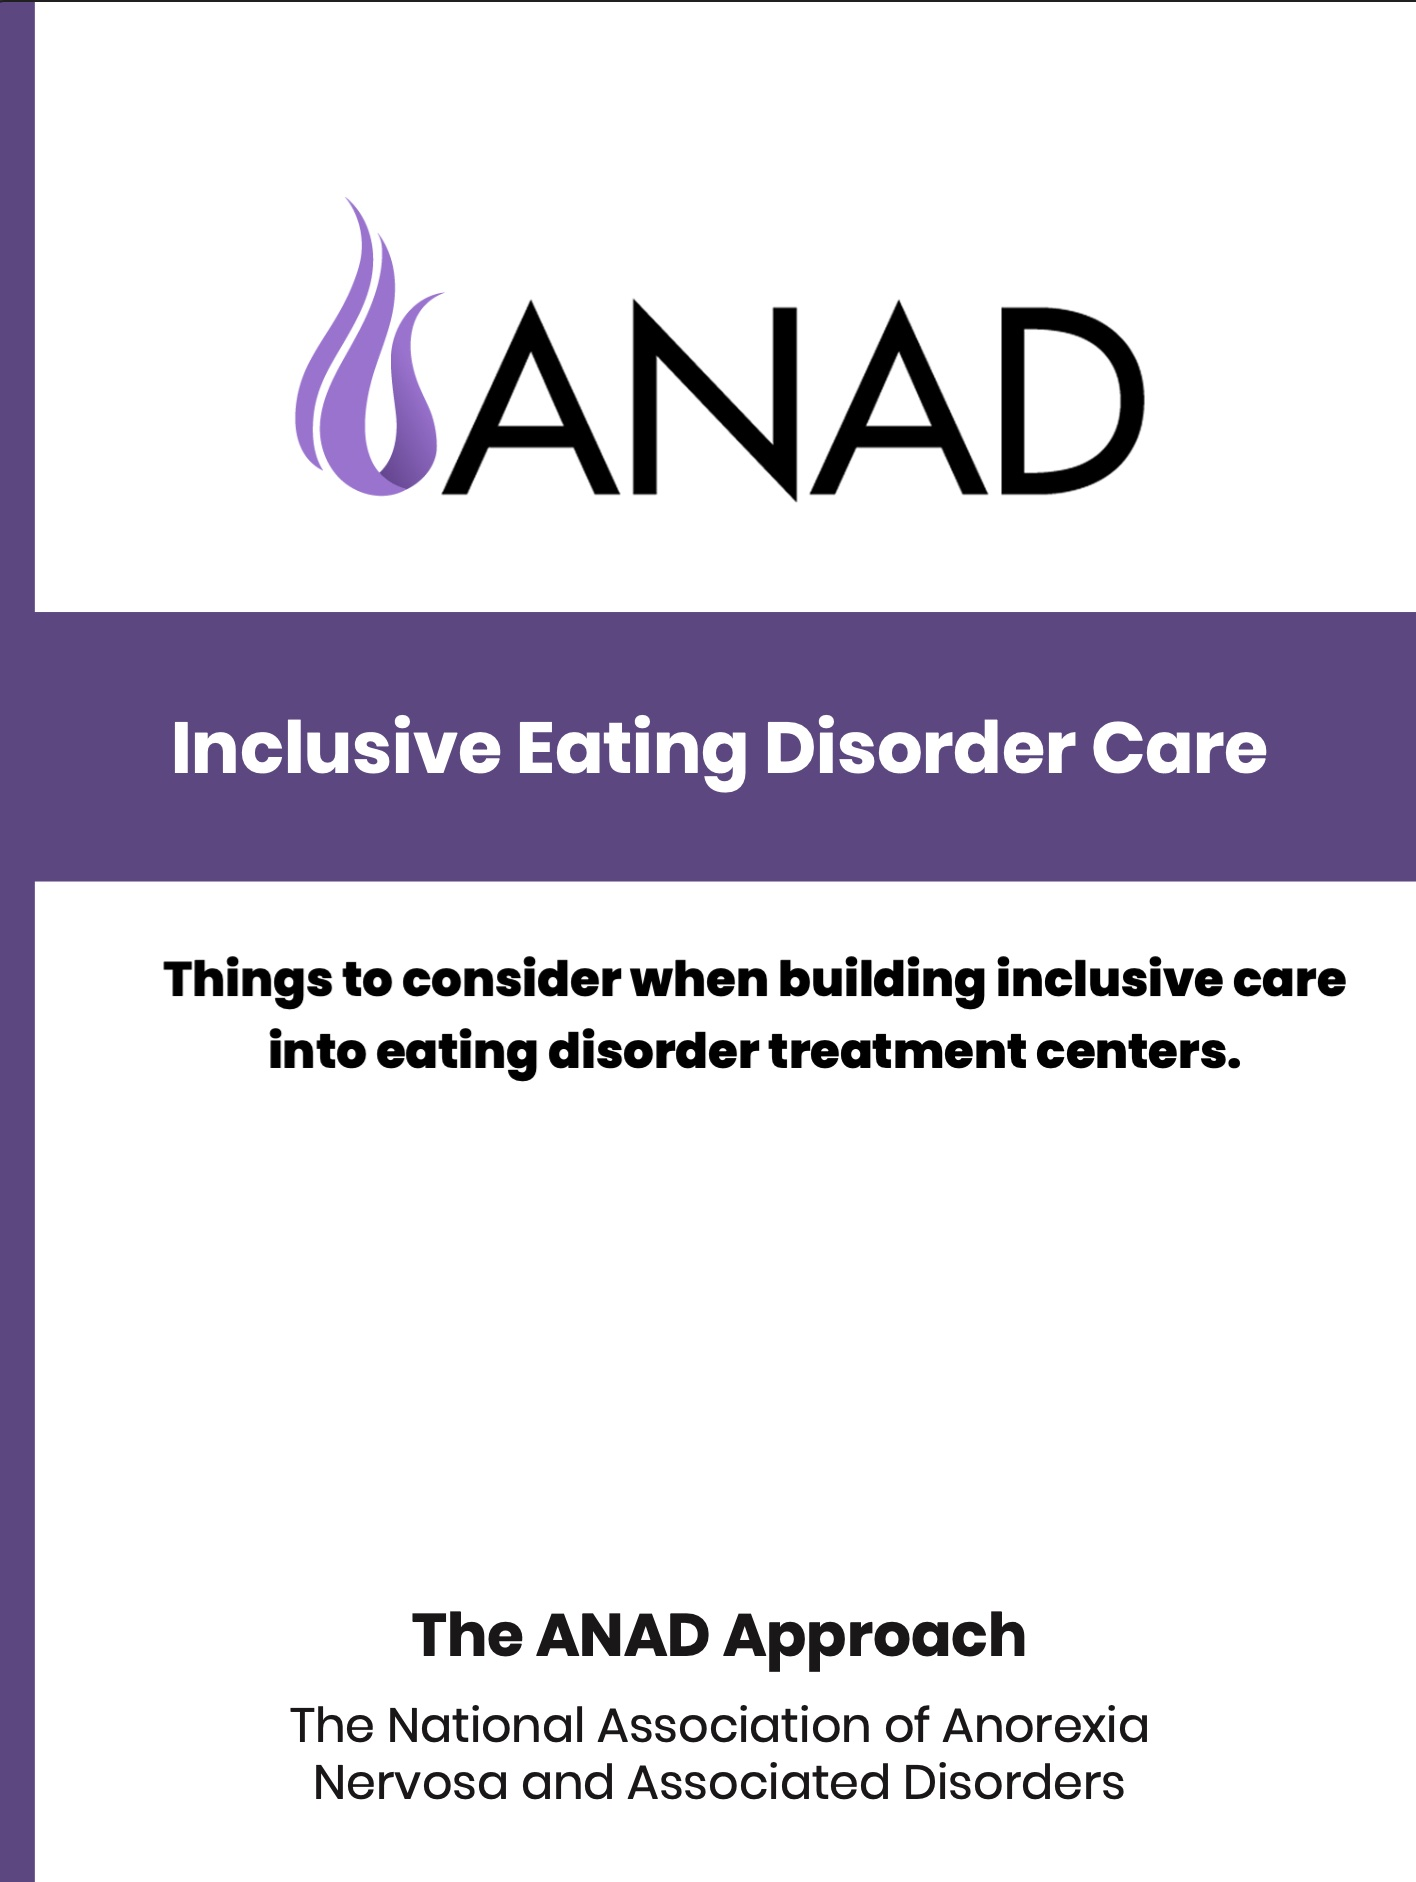 Includive Eating Disorder Care - things to consider PDF